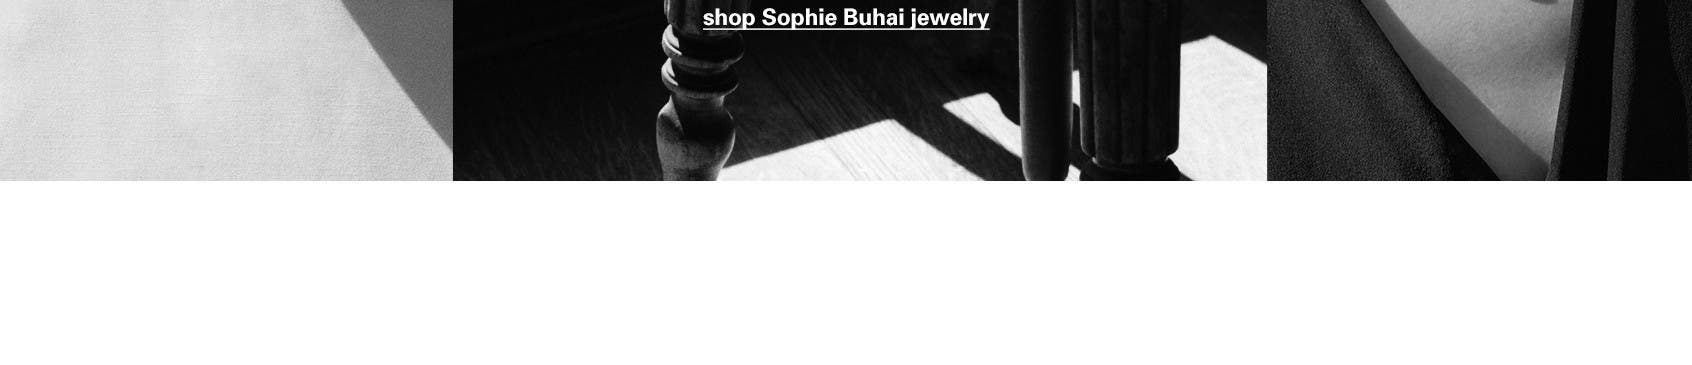 Sophie Buhai on a well-designed life: an interview with the L.A.-based jewelry designer.